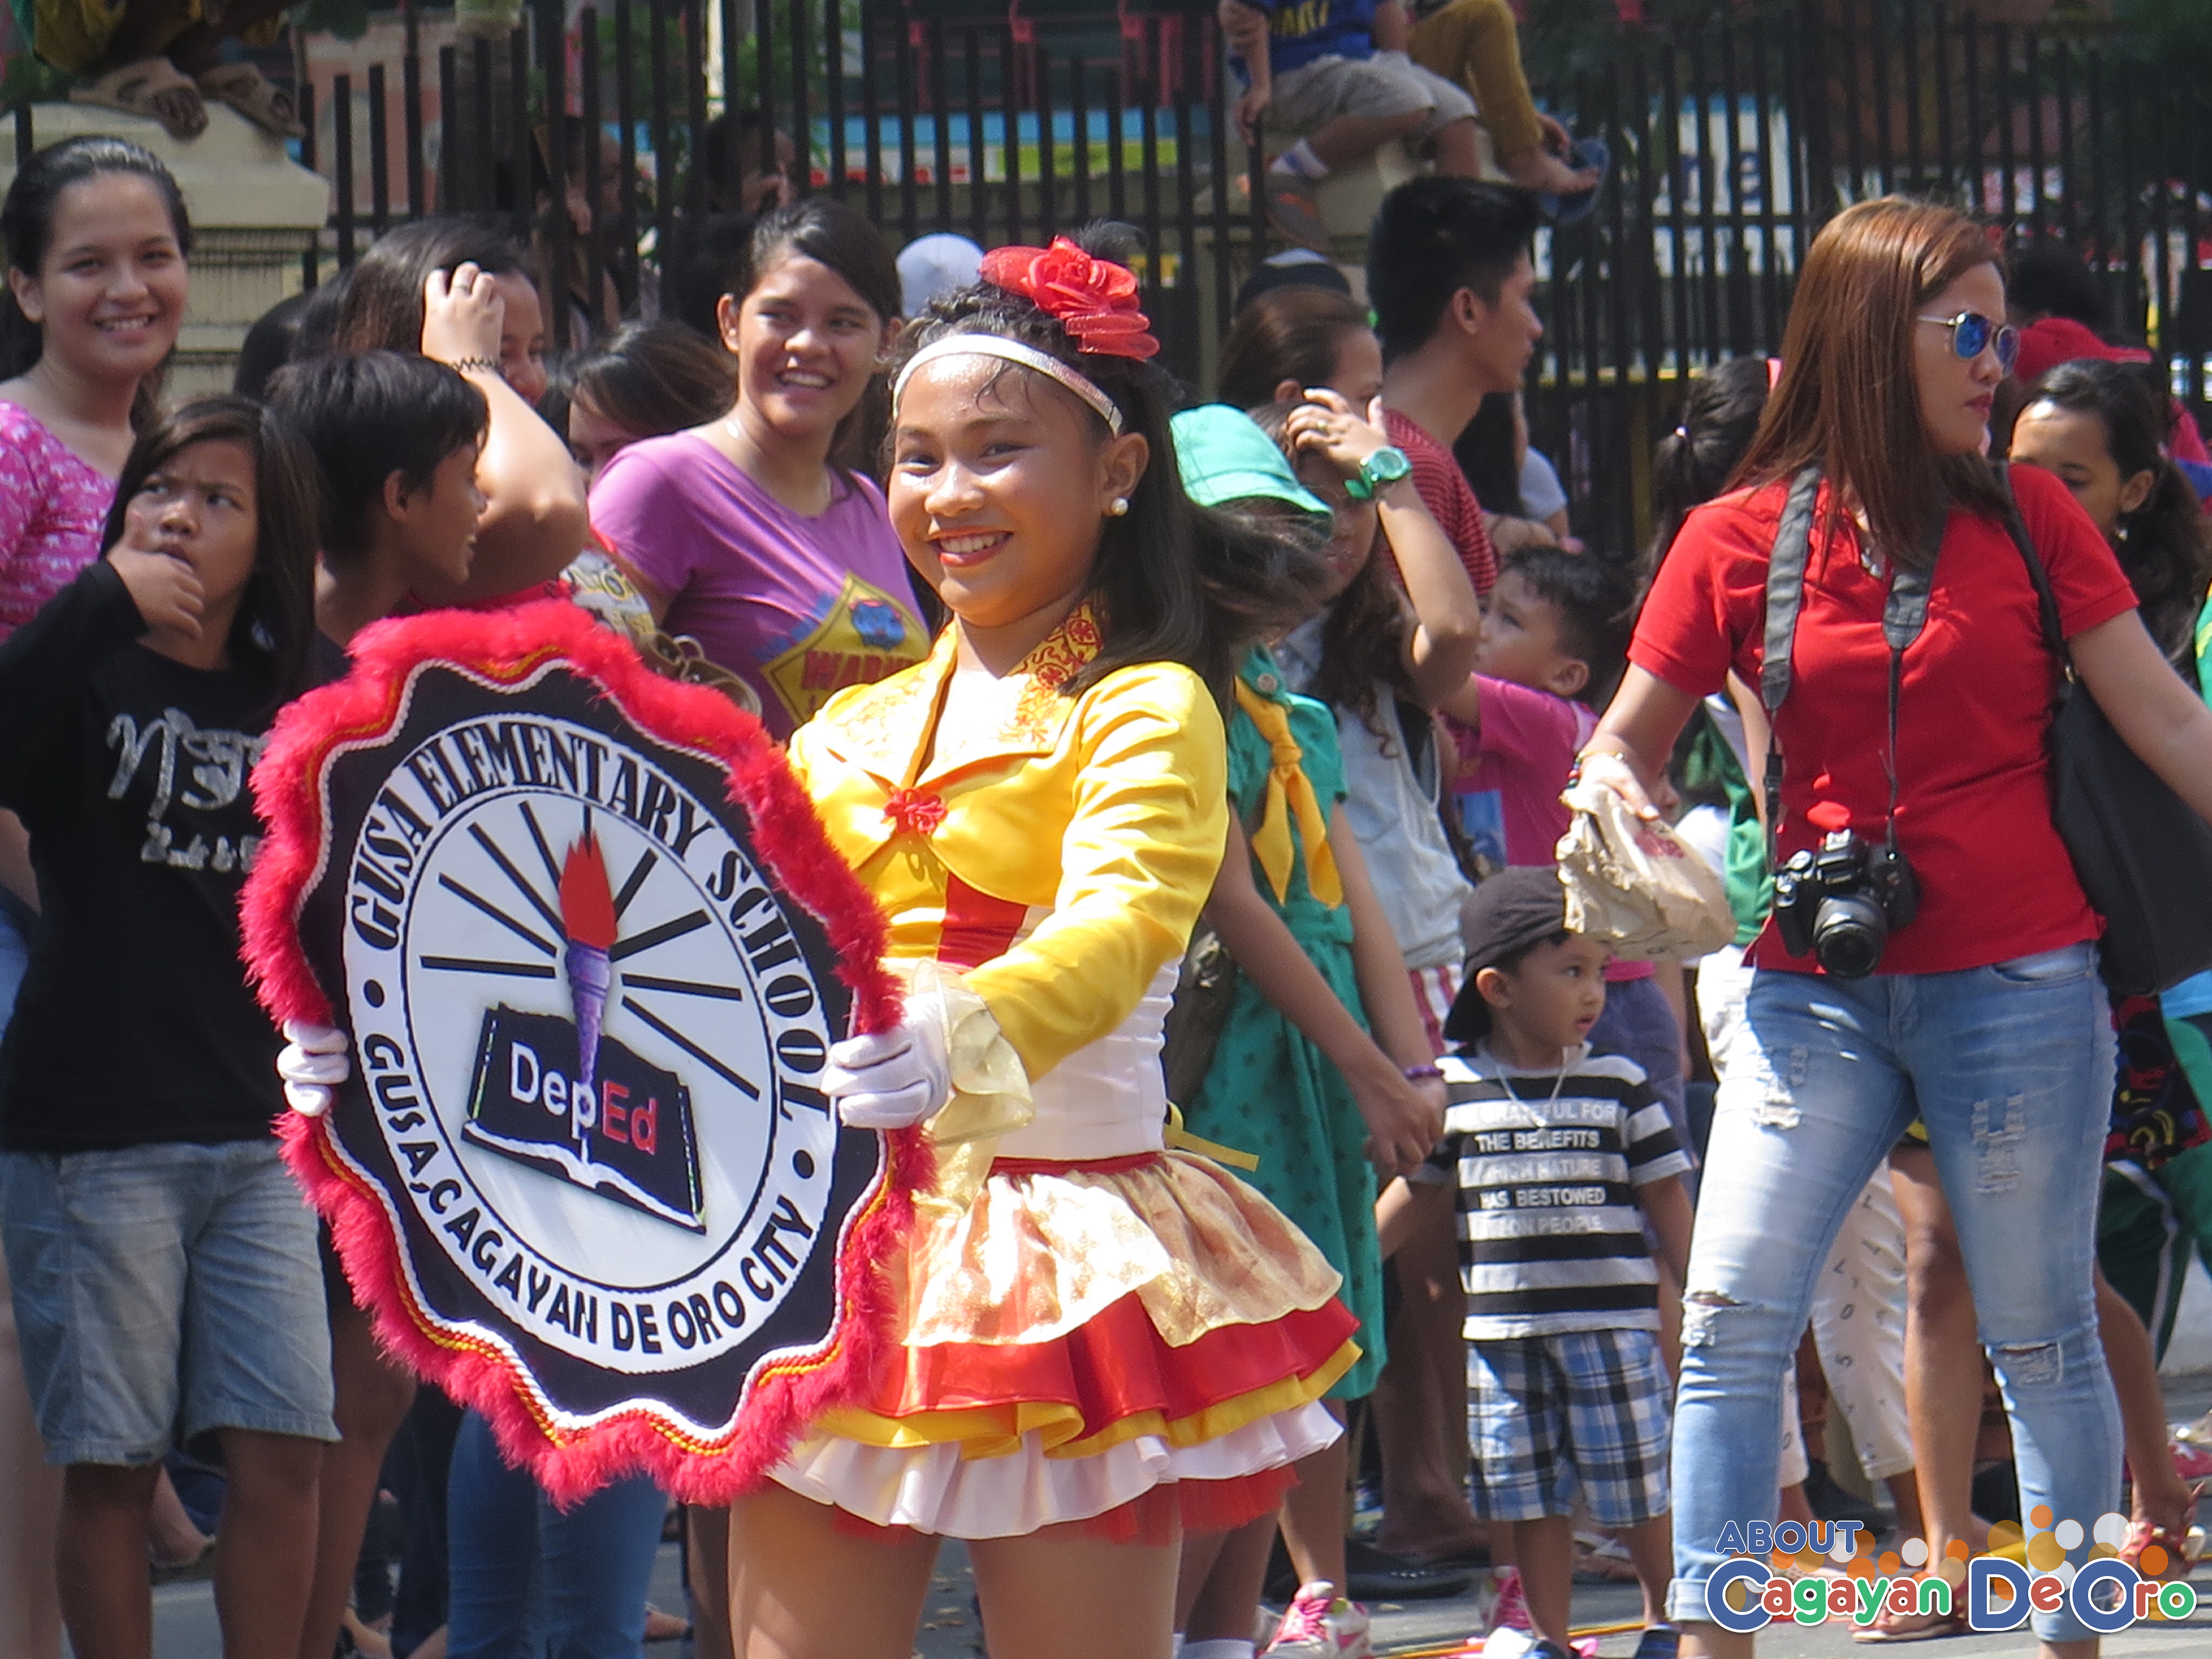 Gusa Elementary School at Cagayan de Oro The Higalas Parade of Floats and Icons 2015